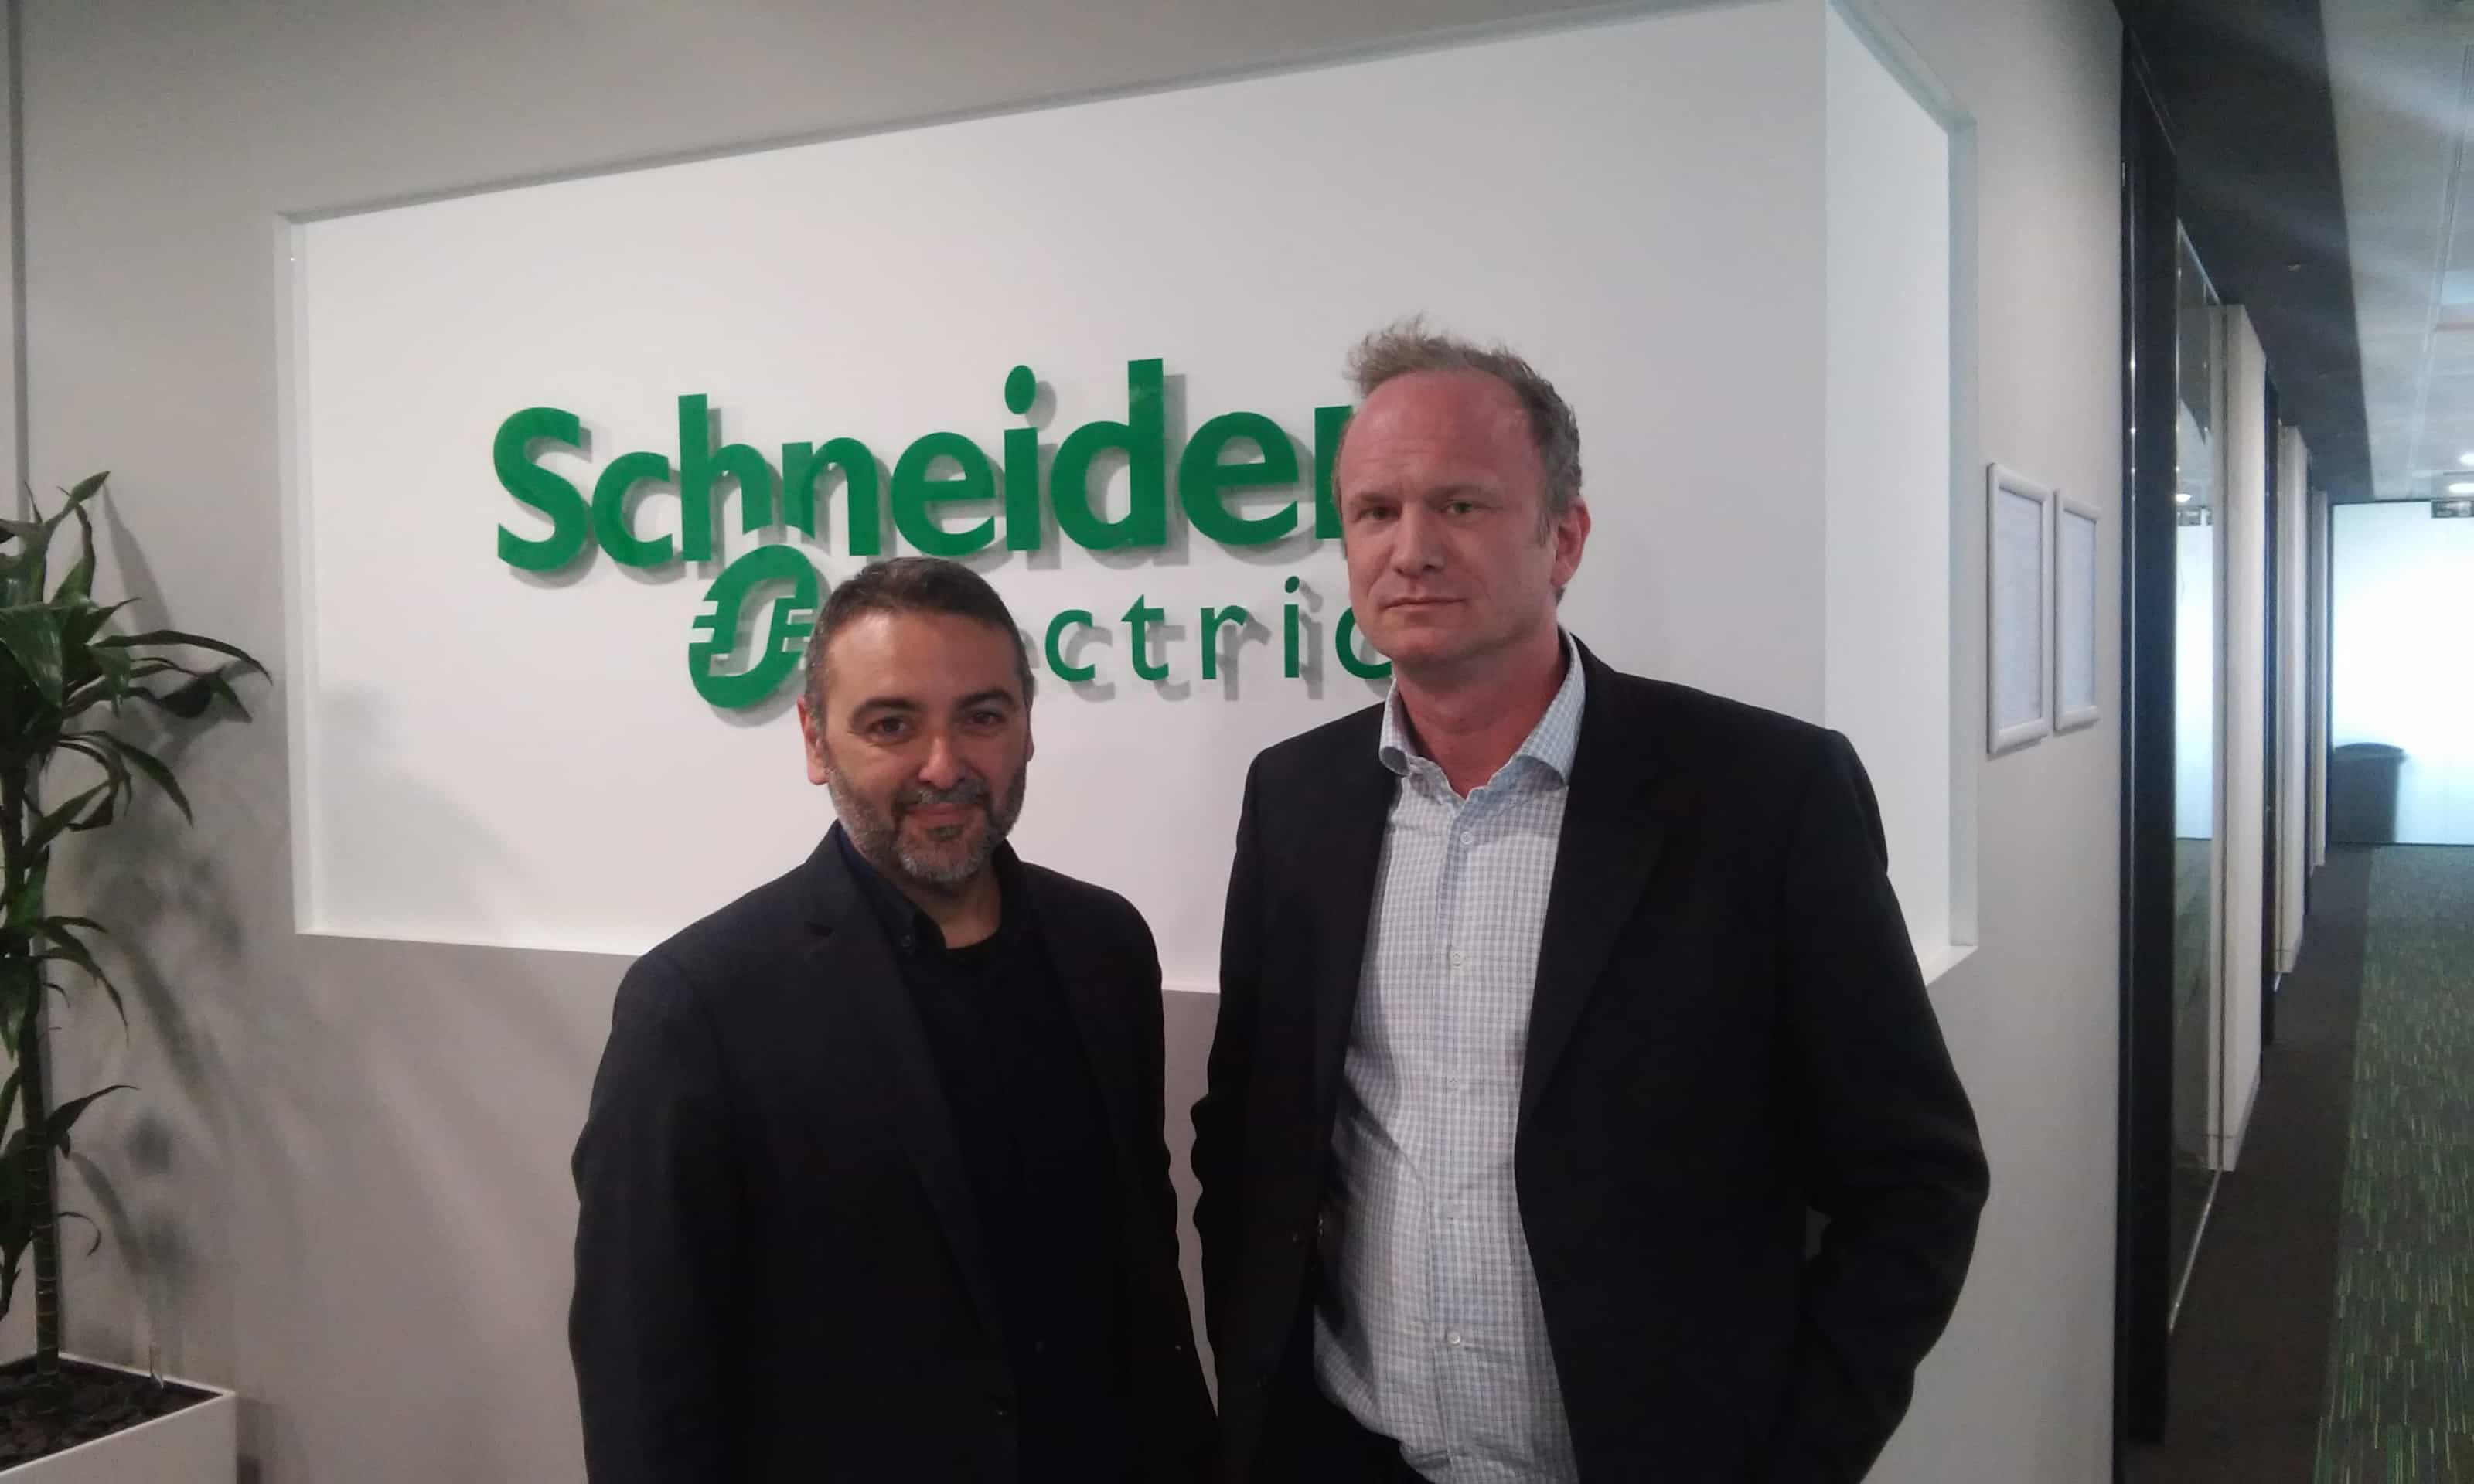 Elliot and Giuseppe Caltabiano at Schneider Electric after recording a podcast on global content marketing